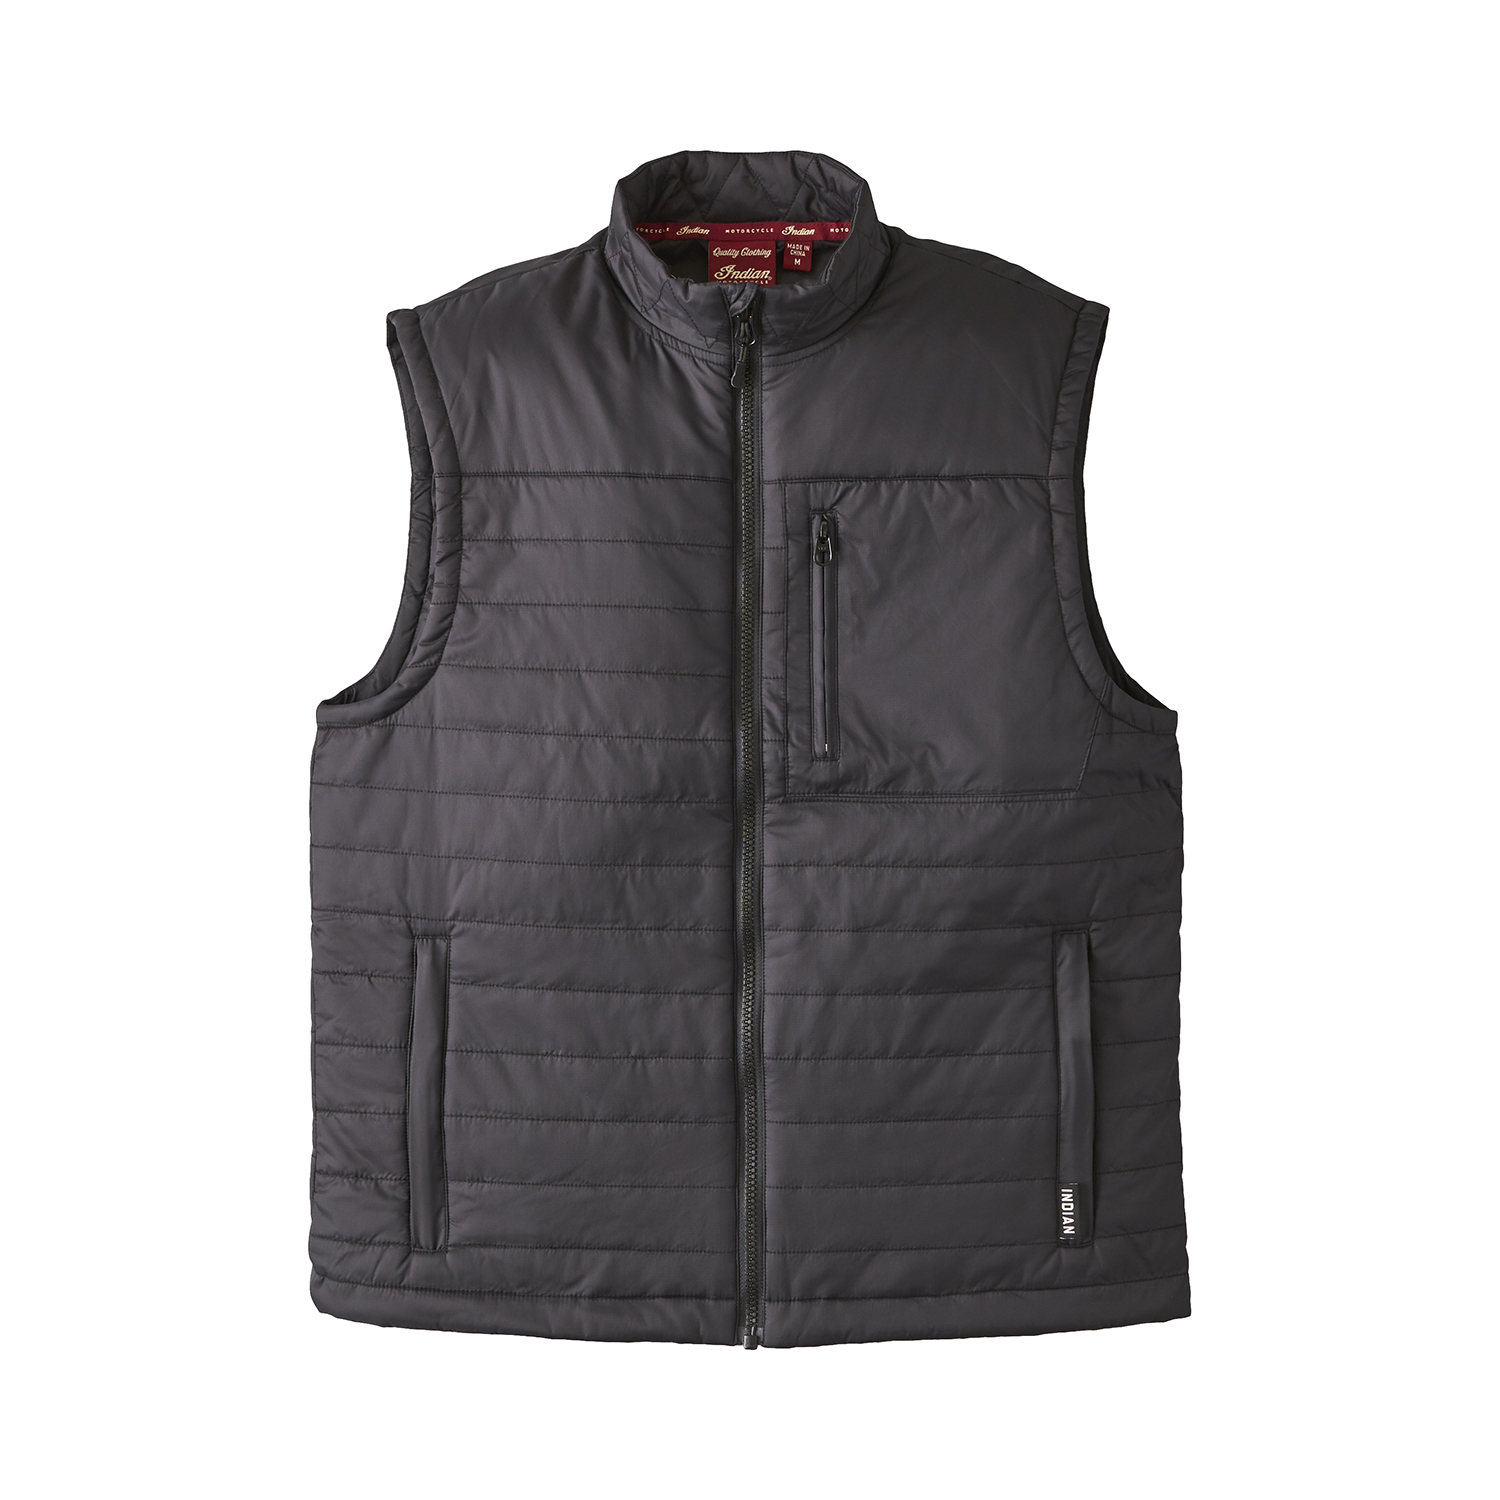 miniature 6 - Indian Motorcycle Men's Thermo Zip-Up Undervest, Black